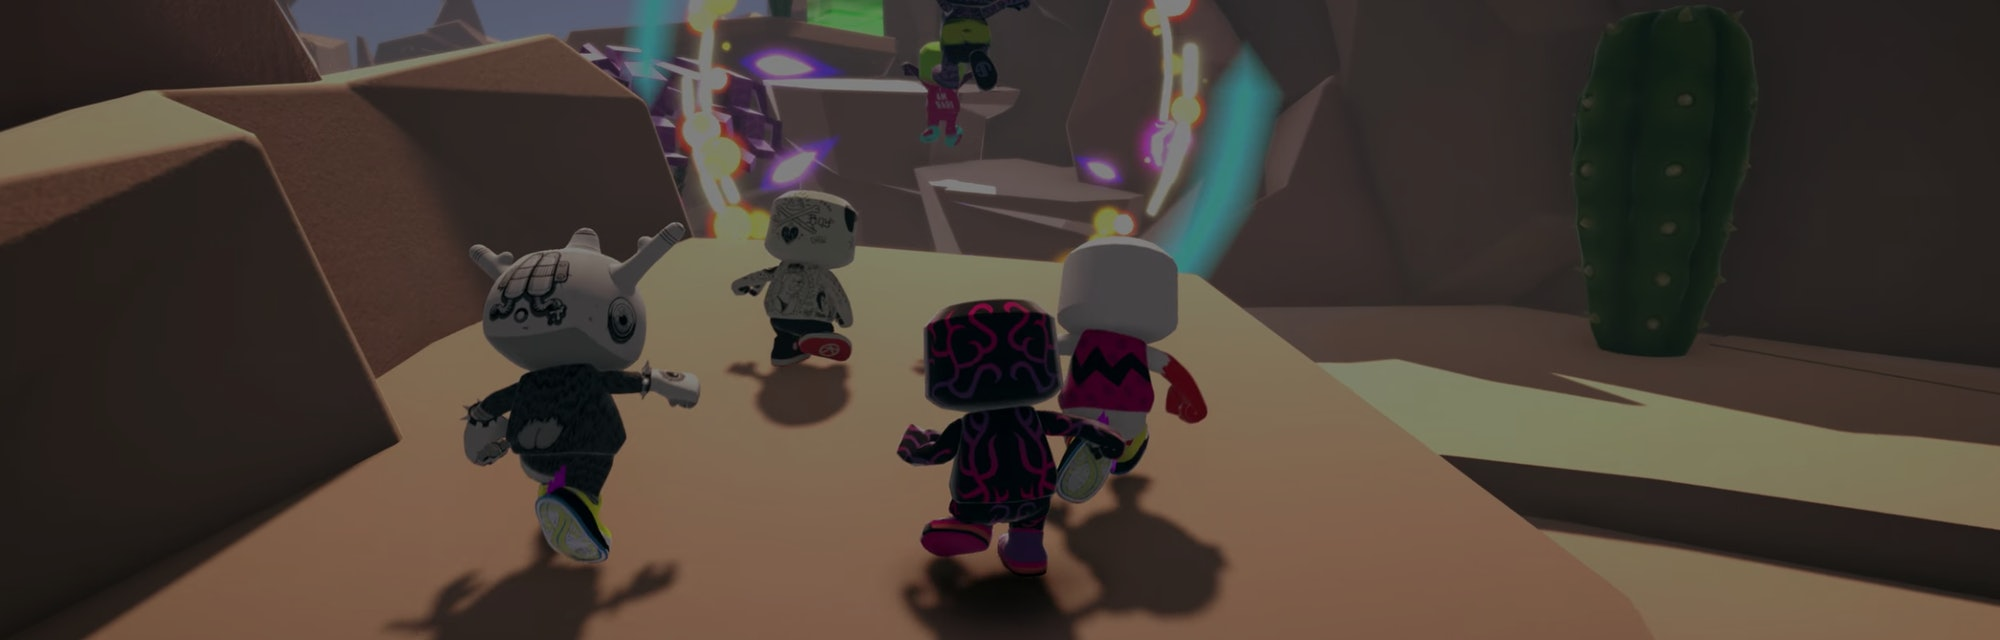 'Blankos Block Party' is an open-world multiplayer game that will allow players to sell their characters for real money.